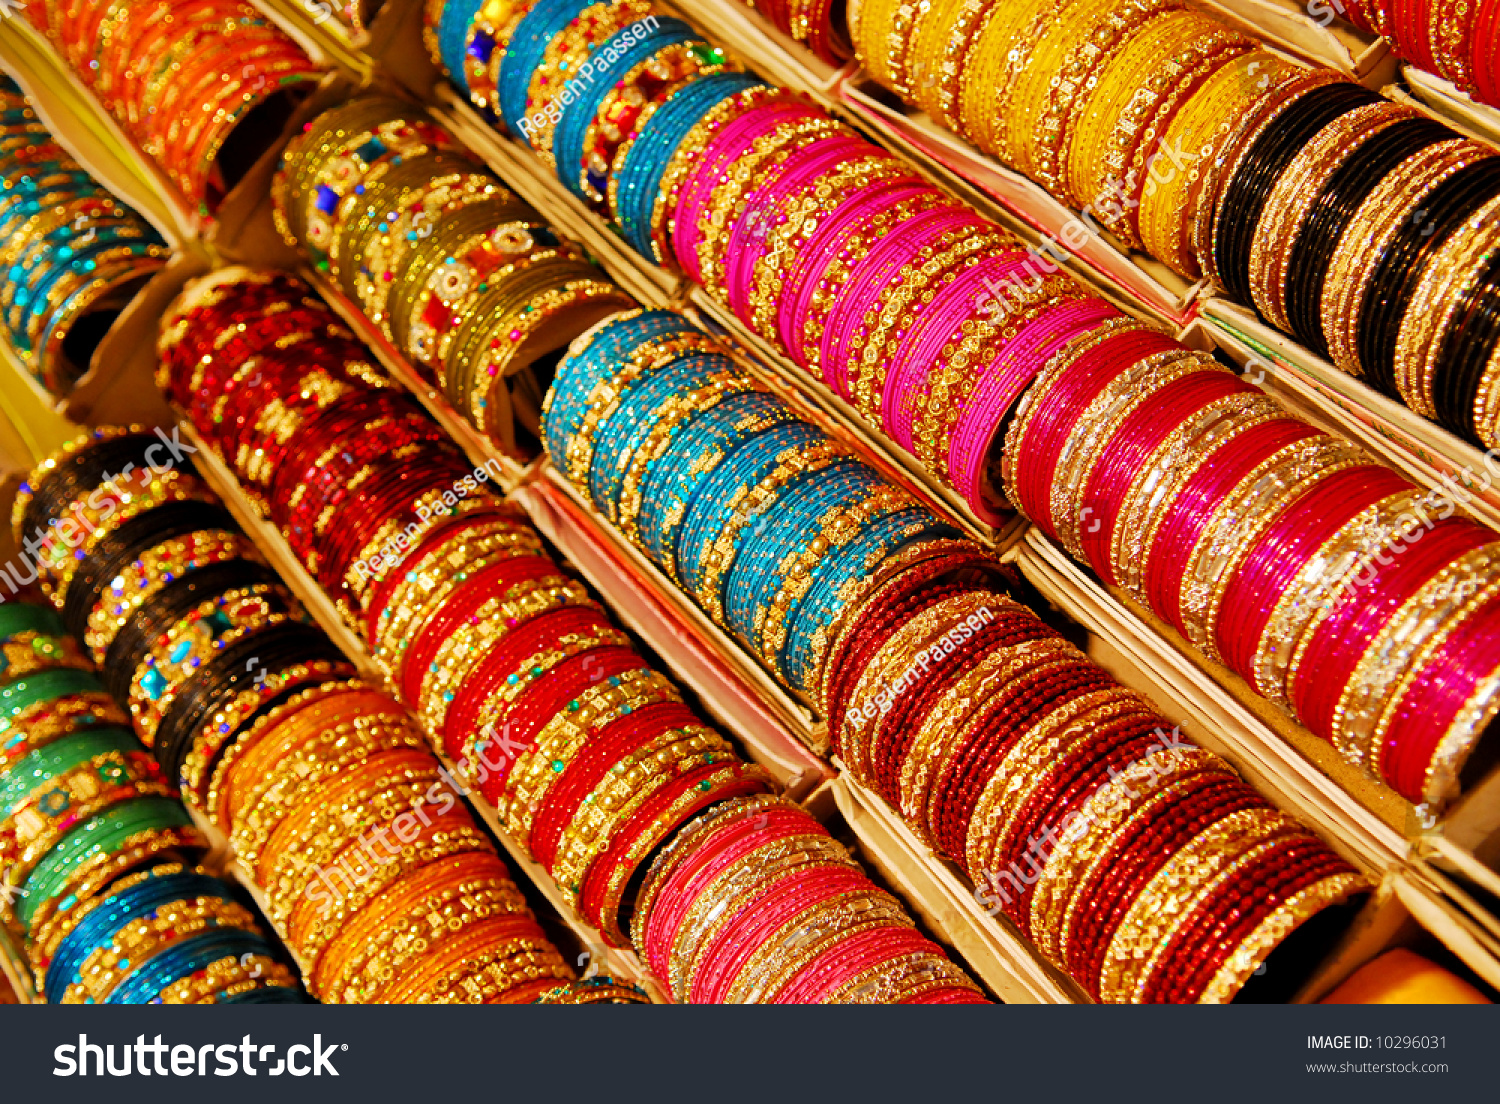 Background Colorful Indian Bangles Stock Photo 10296031 - Shutterstock